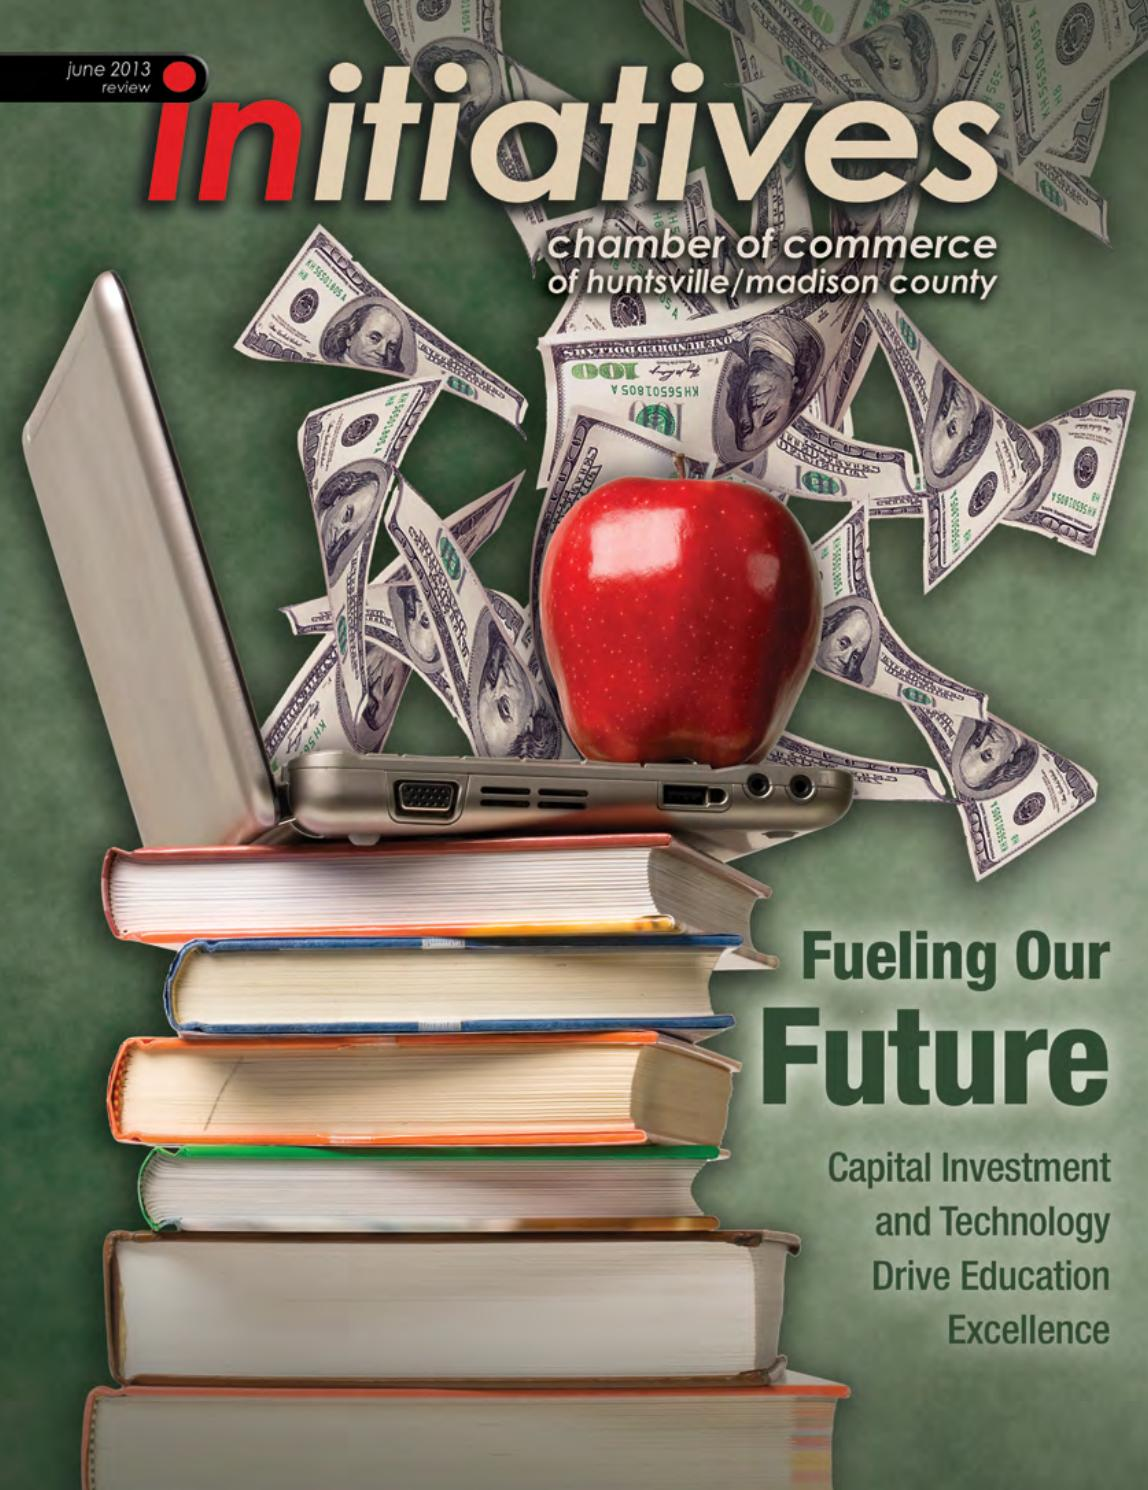 Initiatives magazine, June 2013 by Huntsville/Madison County